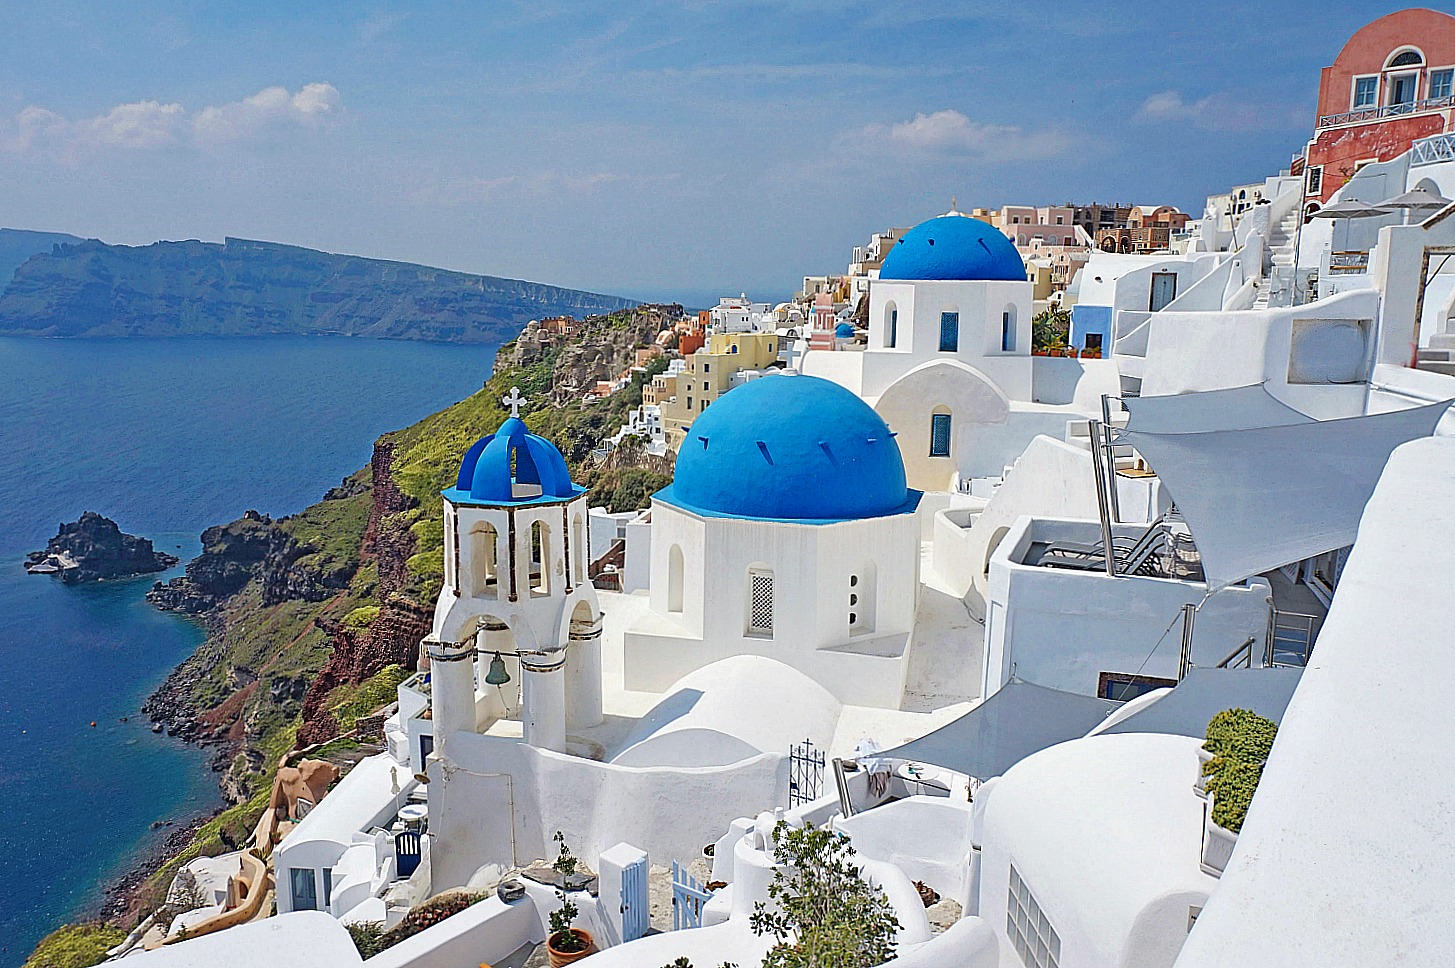 Classic view of blue domes in Oia Santorini.